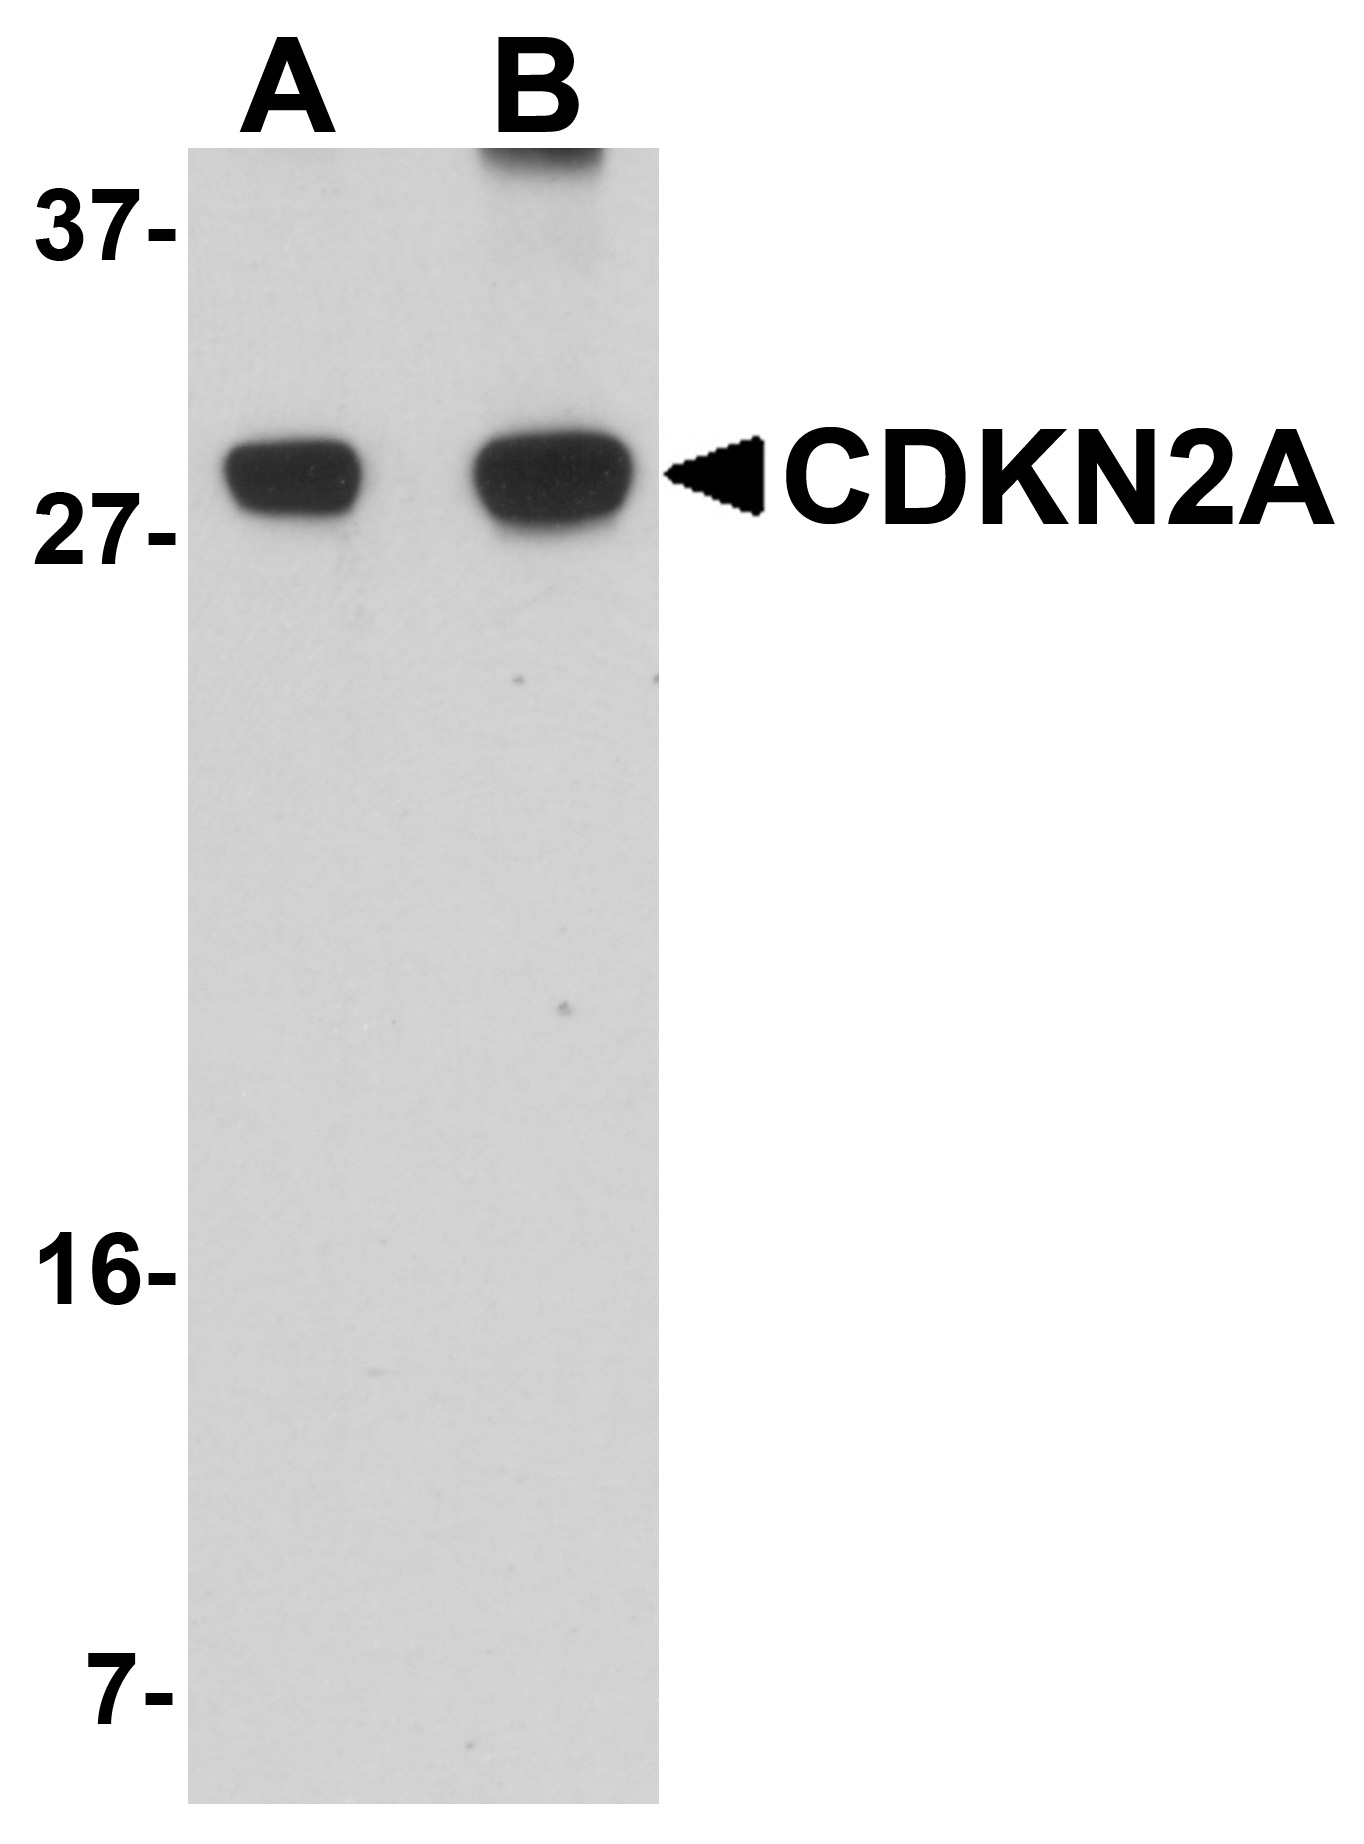 CDKN2A Antibody (OAPB00835) in C2C12 cells using Western Blot